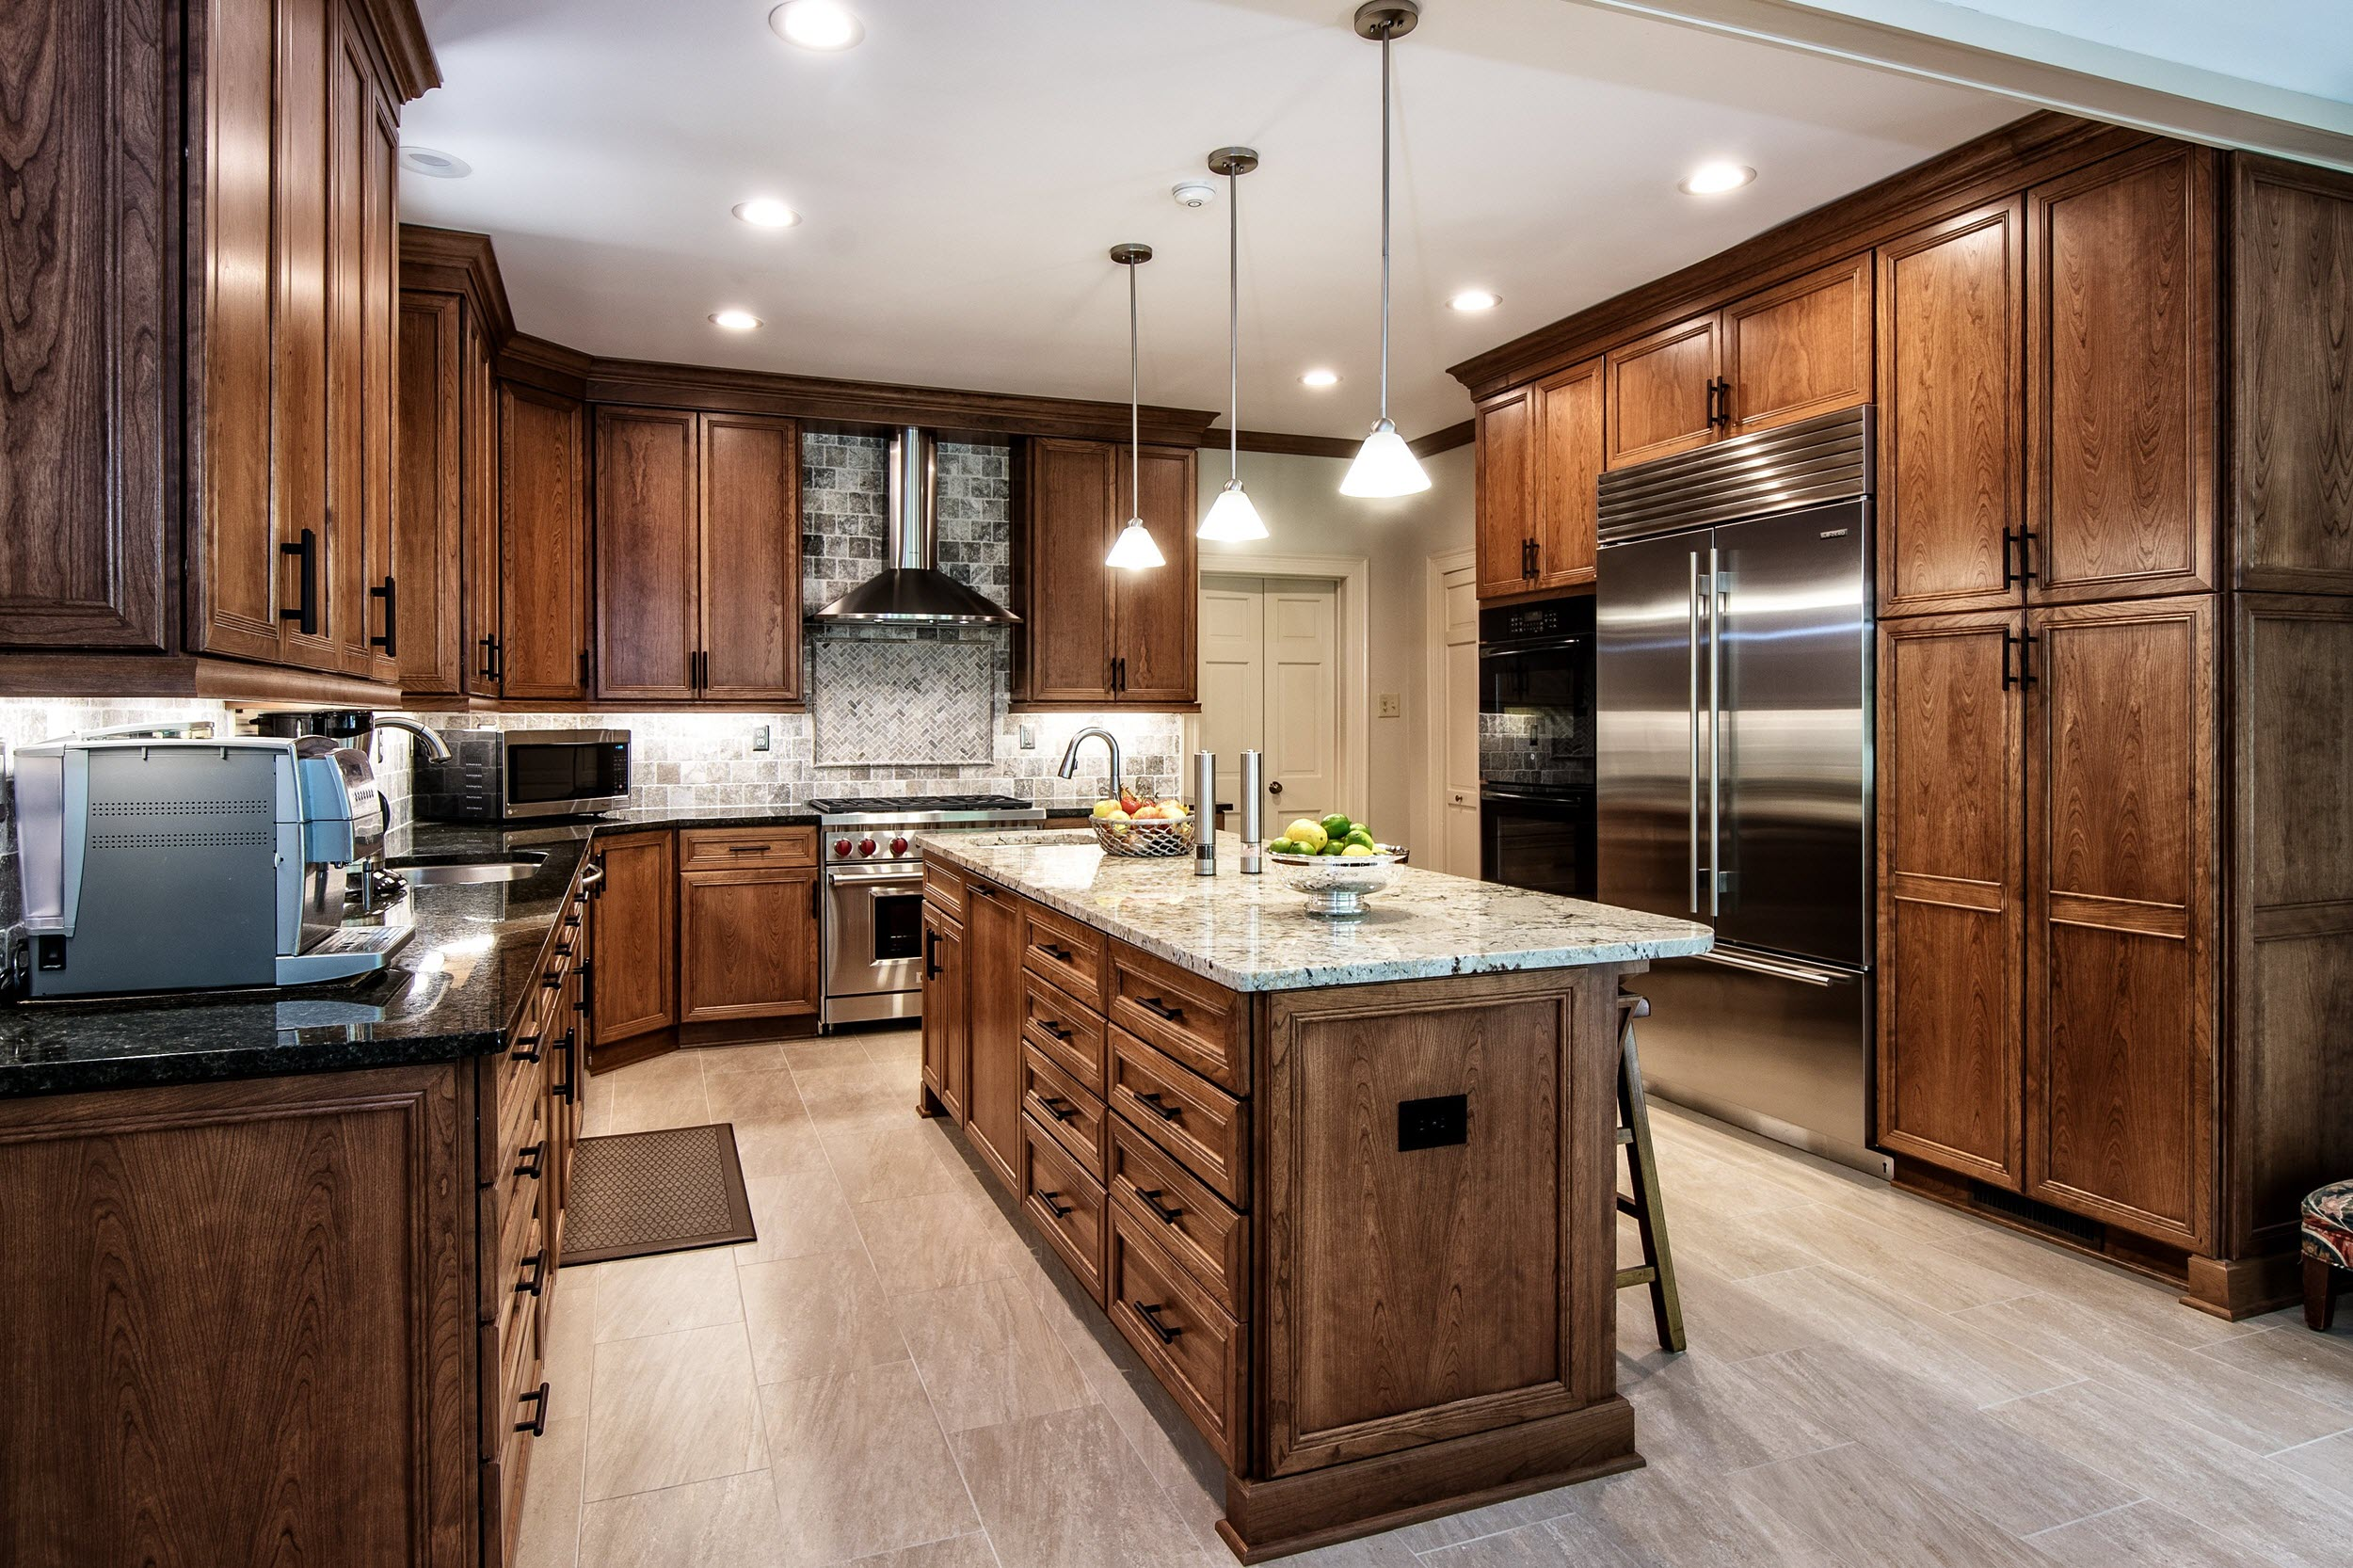 Home Remodeling And Custom Home Building In Arlington Tennessee